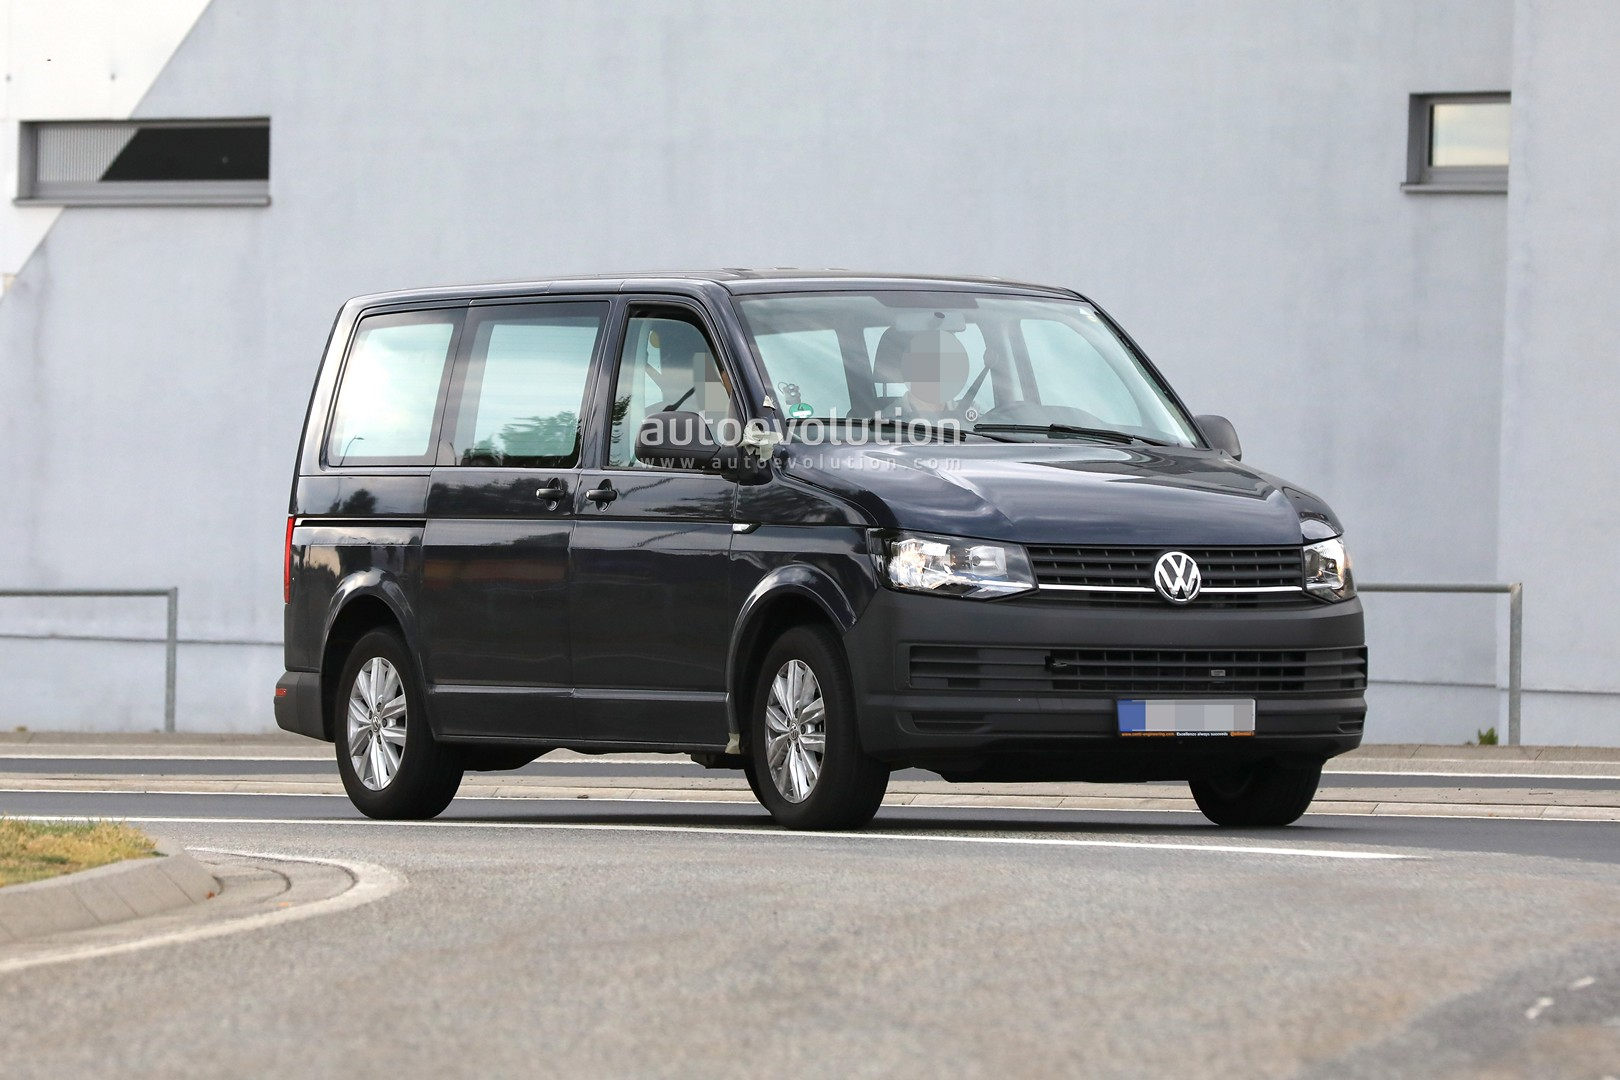 Spyshots: 2020 Volkswagen T7 Mule Might Be a Plug-in ...